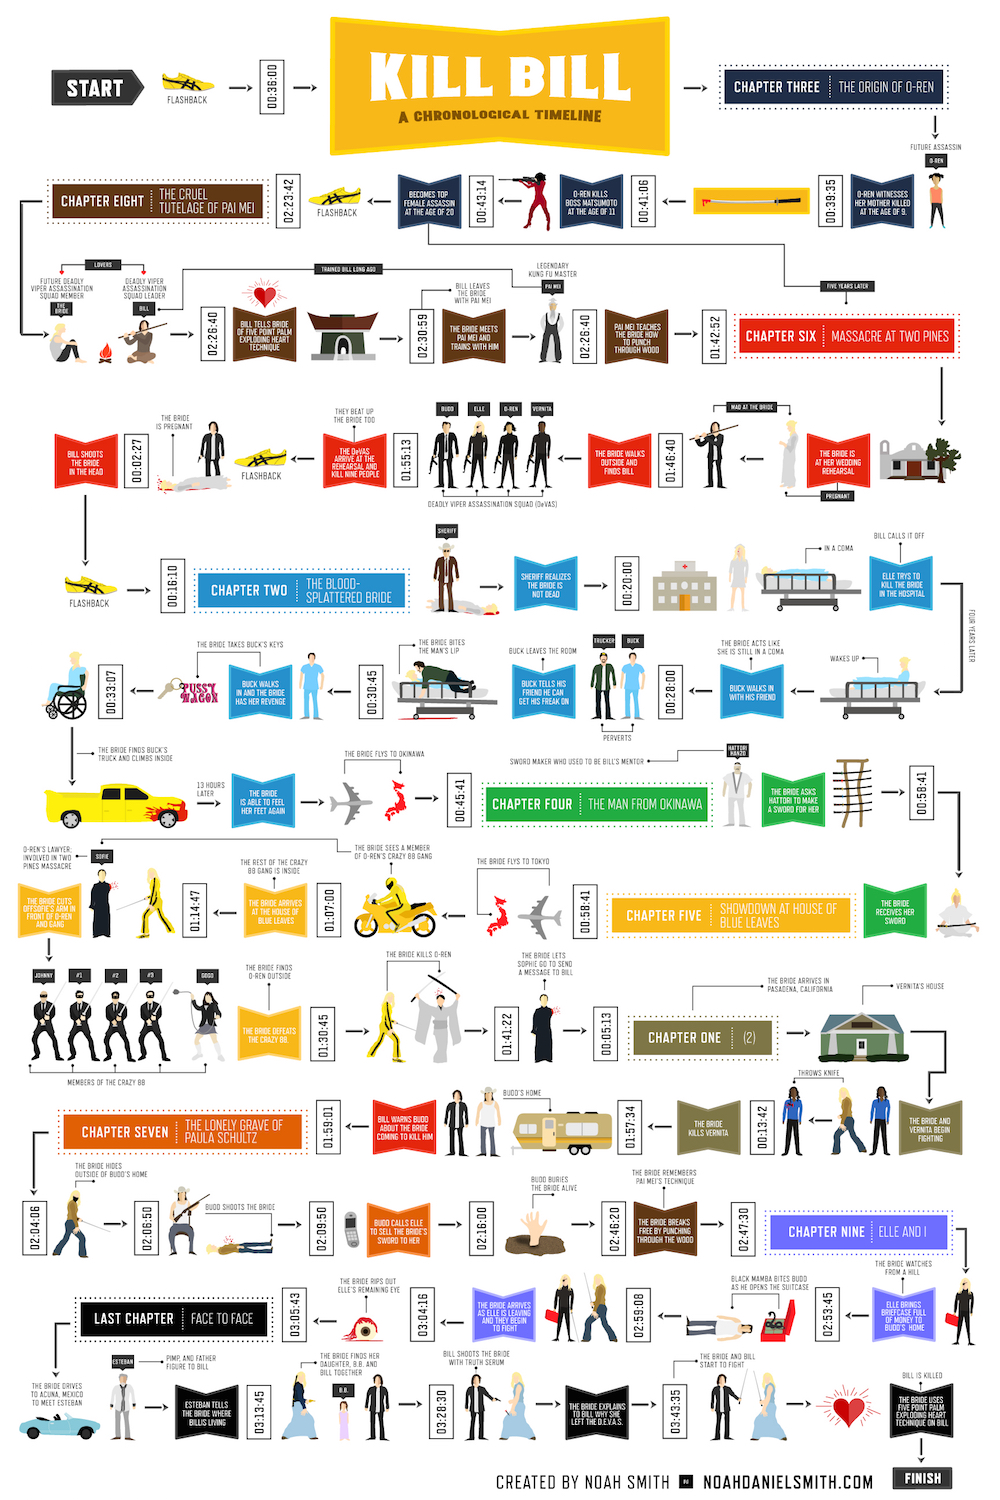 kill bill infographic noah daniel smith i decided to put it in chronological order if you re interested in purchasing it as a 24 x 36 poster you can do so through my shop